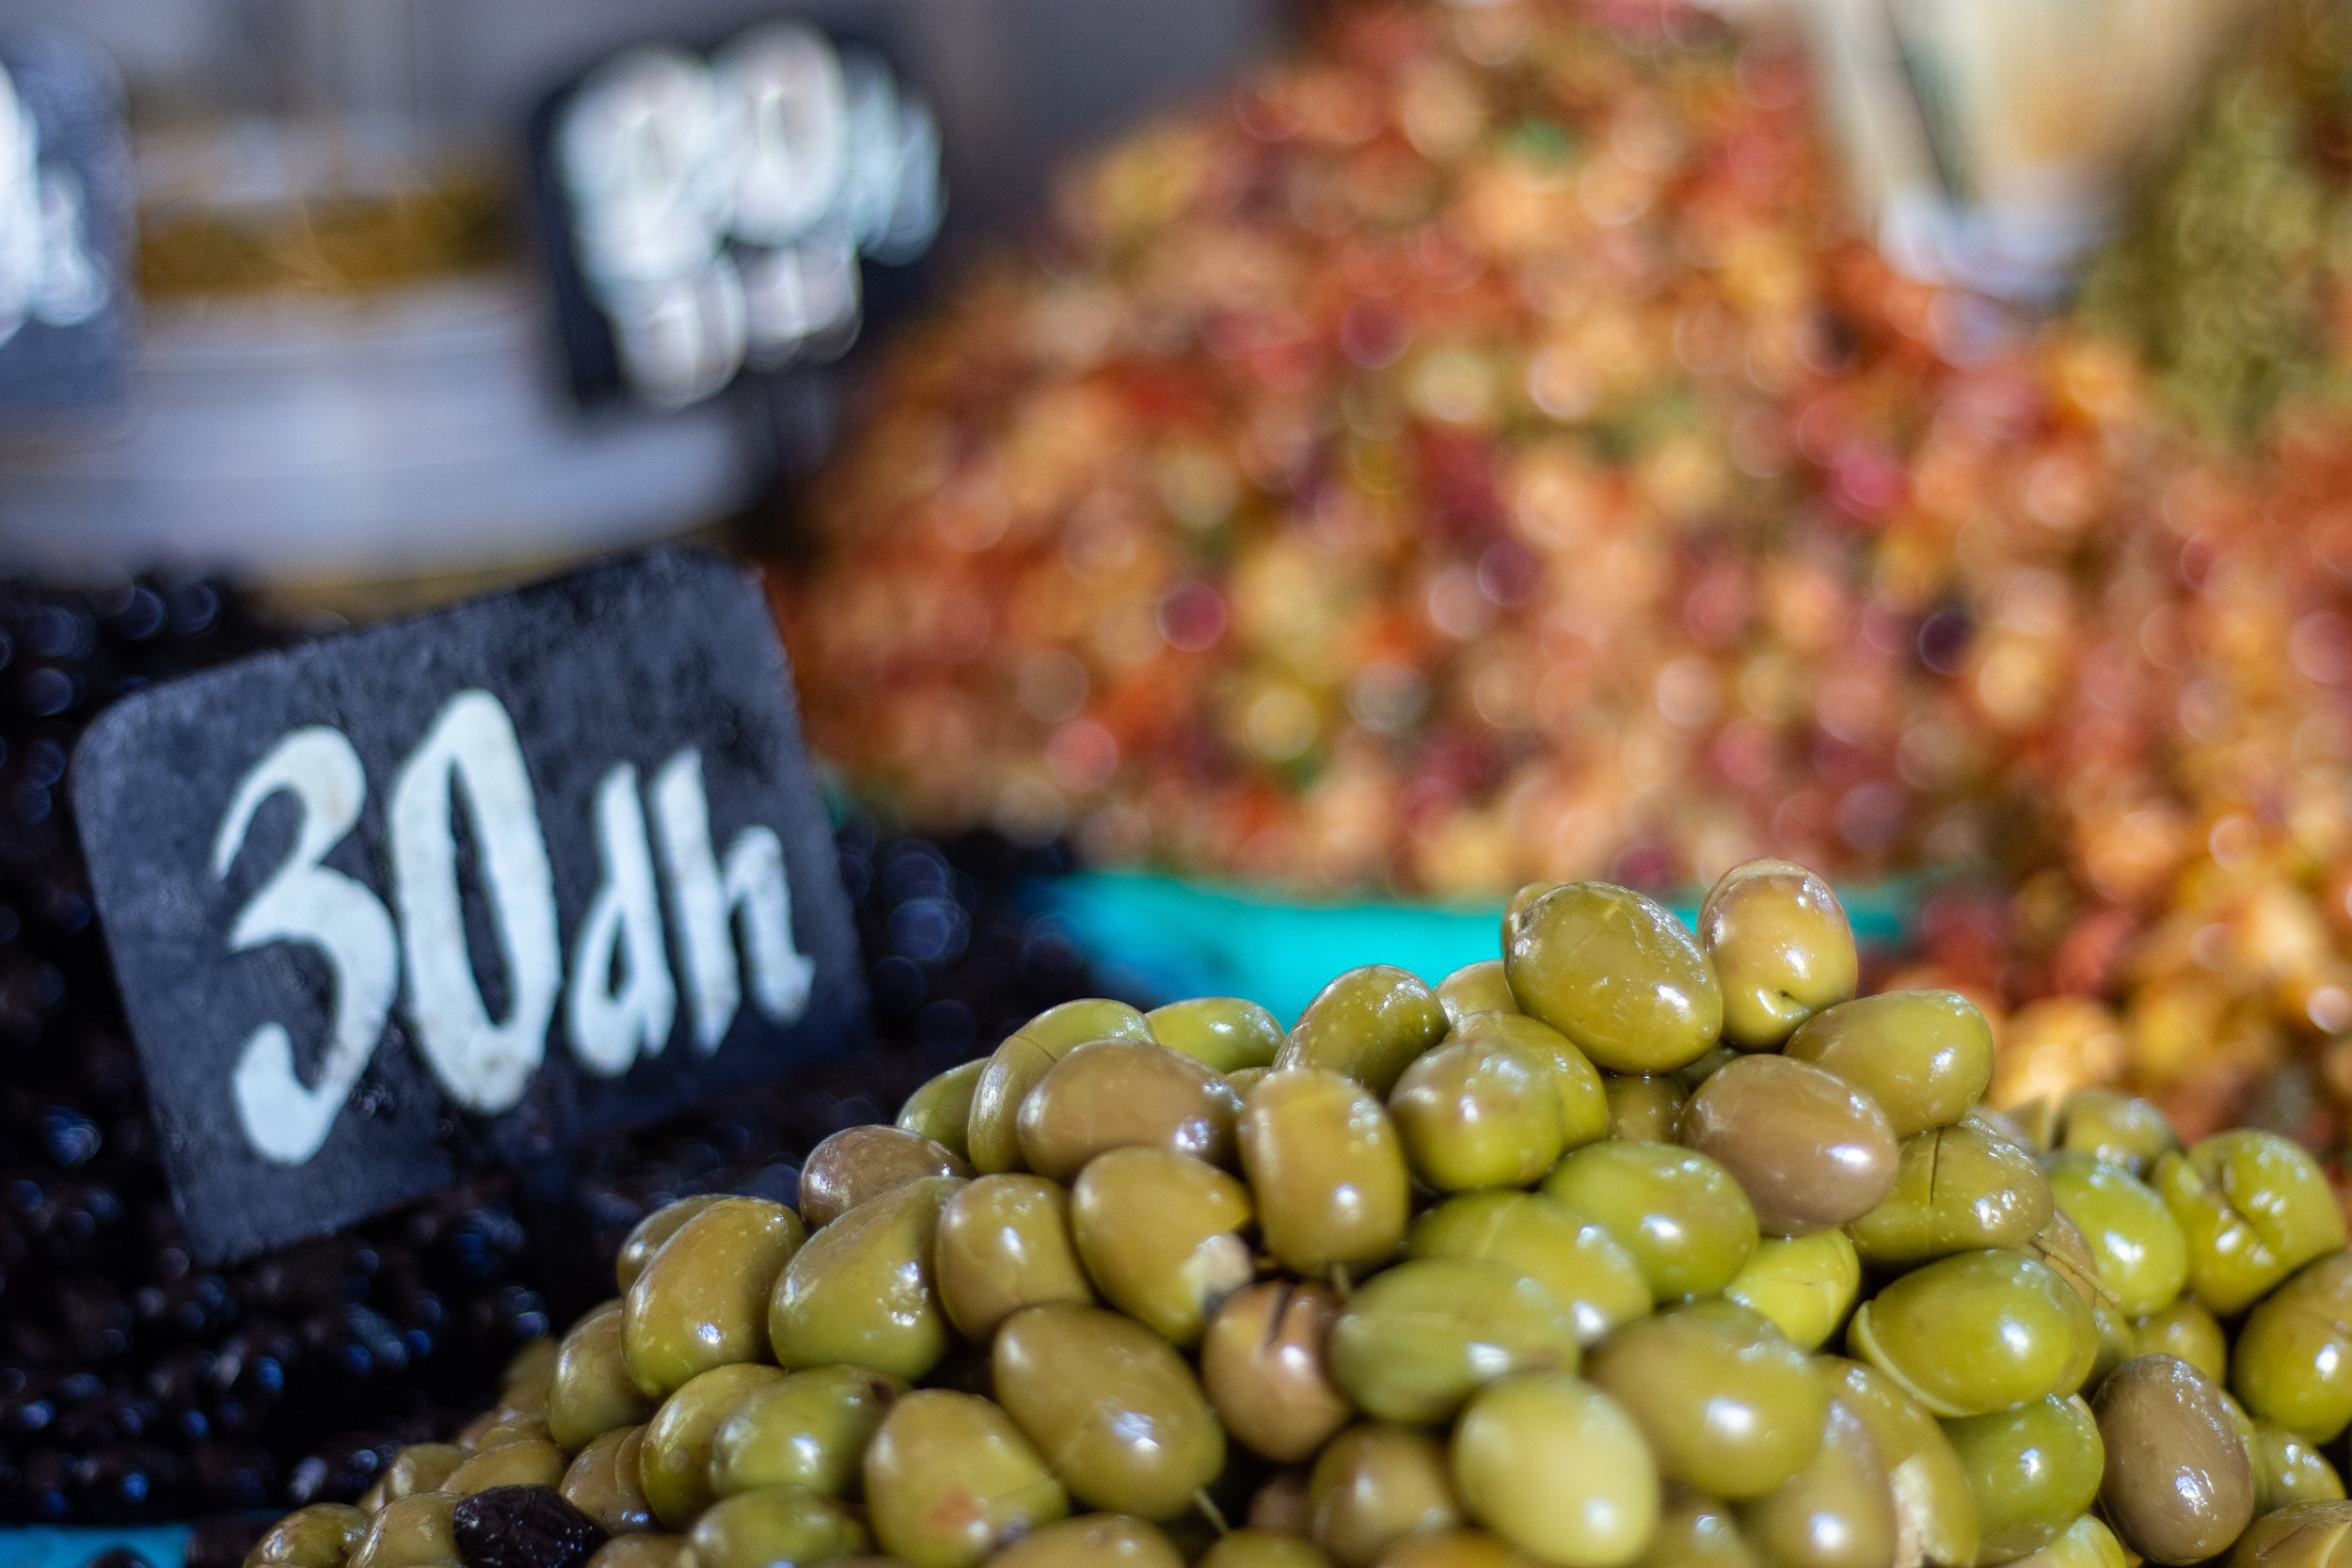 Fragrant mounds of green and cured black olives permeate the market